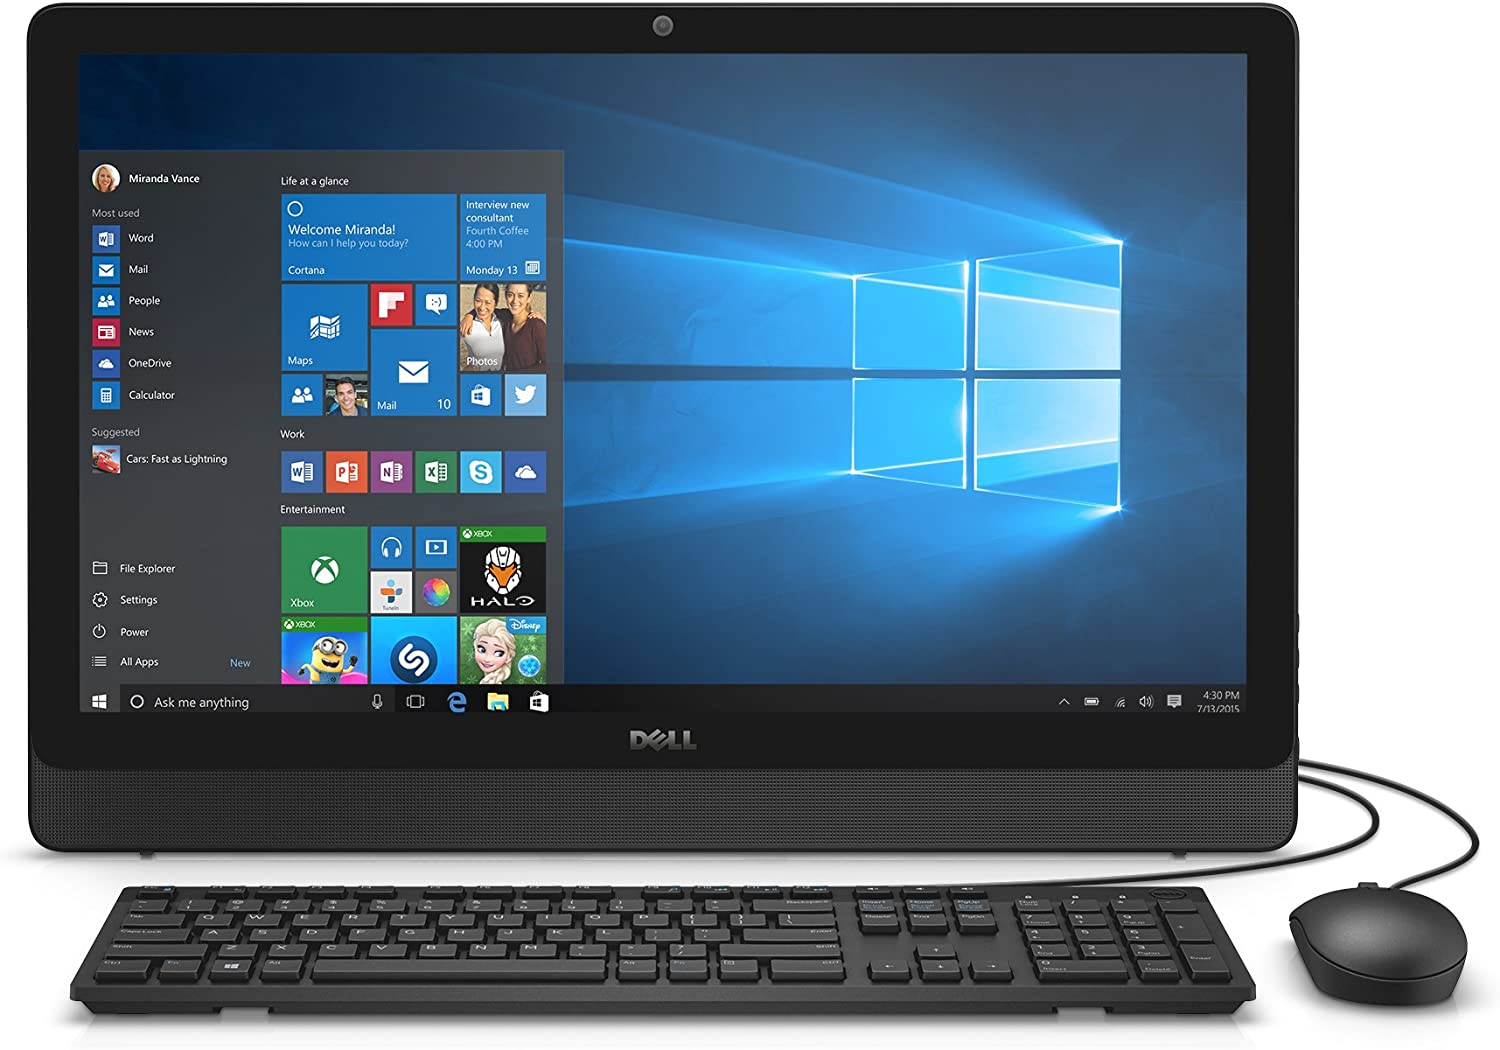 Dell Inspiron i3455-1241BLK 23.8 Inch FHD All-in-One (AMD E2, 4 GB RAM, 500 GB HDD) AMD Radeon R2 Graphics